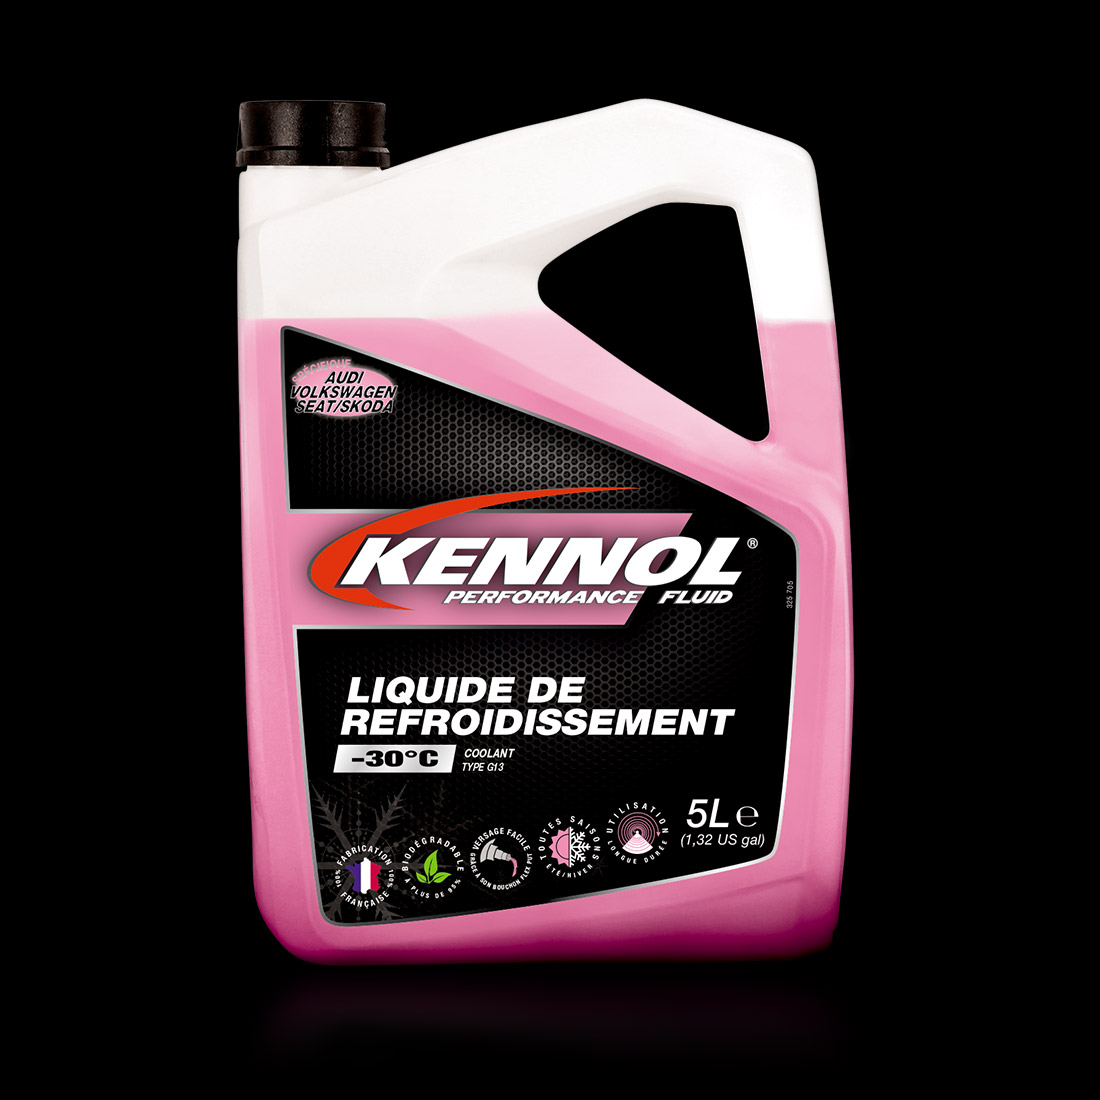 lr type g13 30 c kennol performance fluid. Black Bedroom Furniture Sets. Home Design Ideas